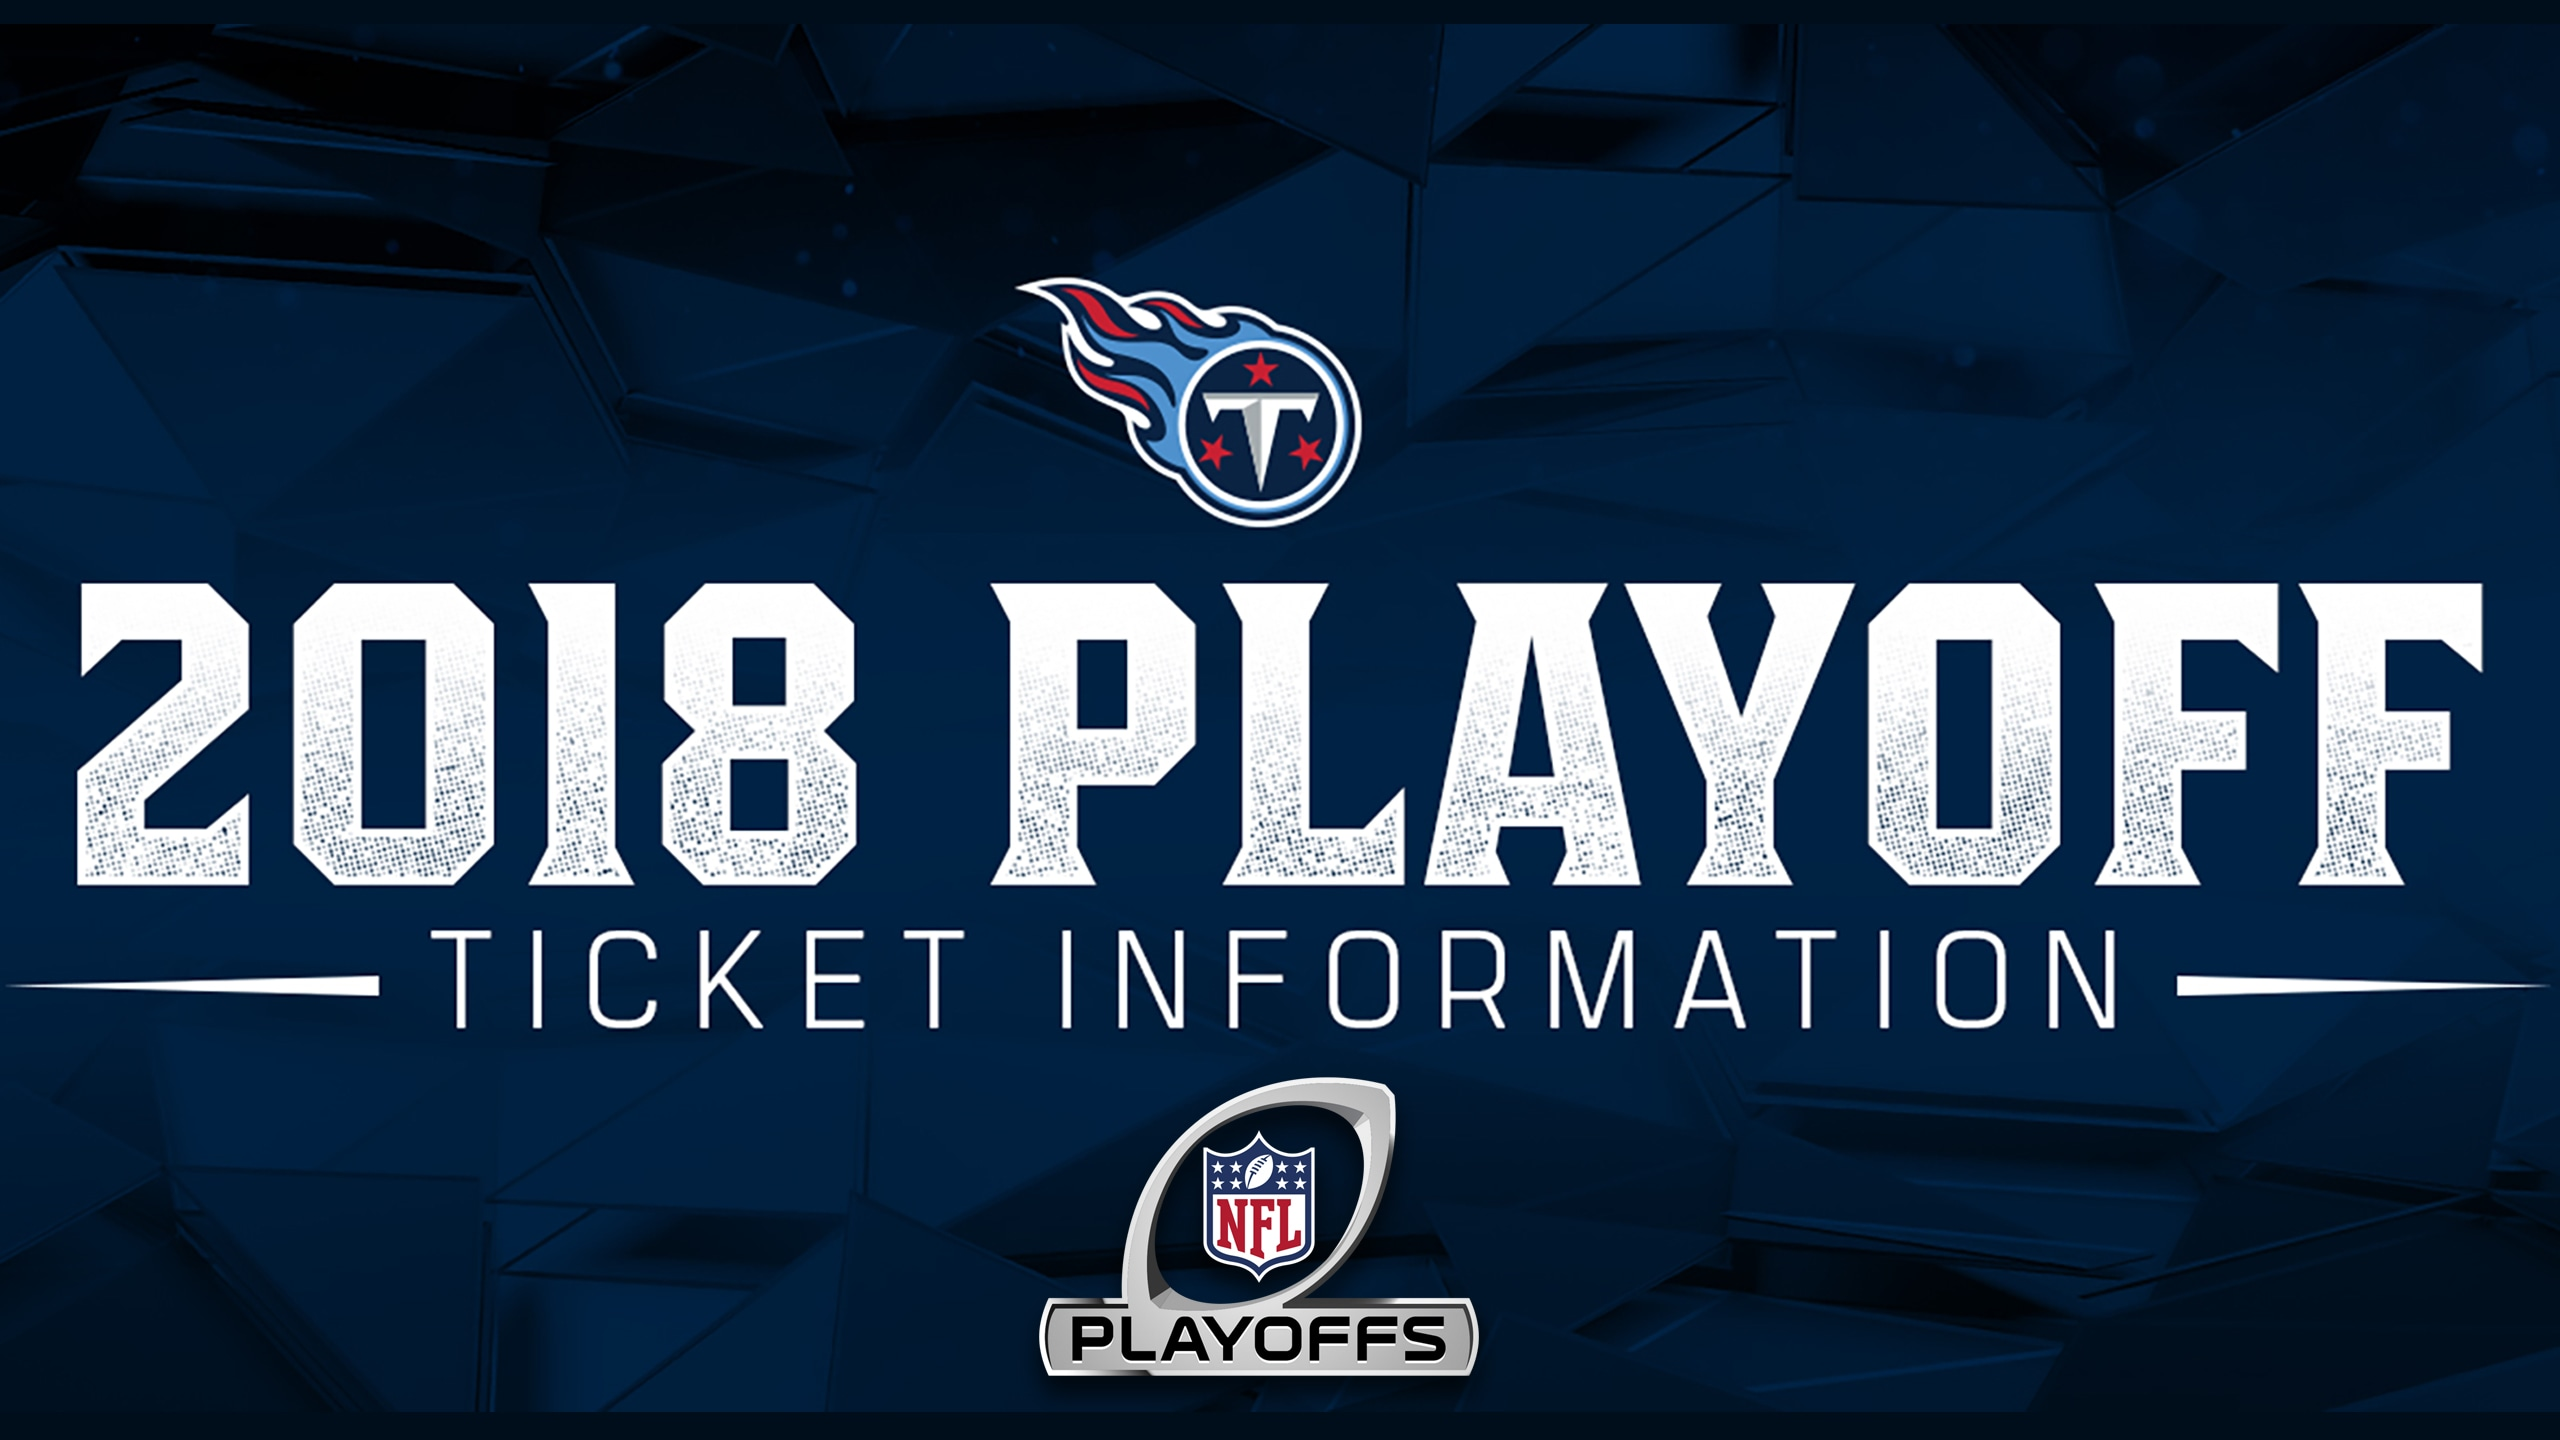 Reserve Your Playoff Tickets Now